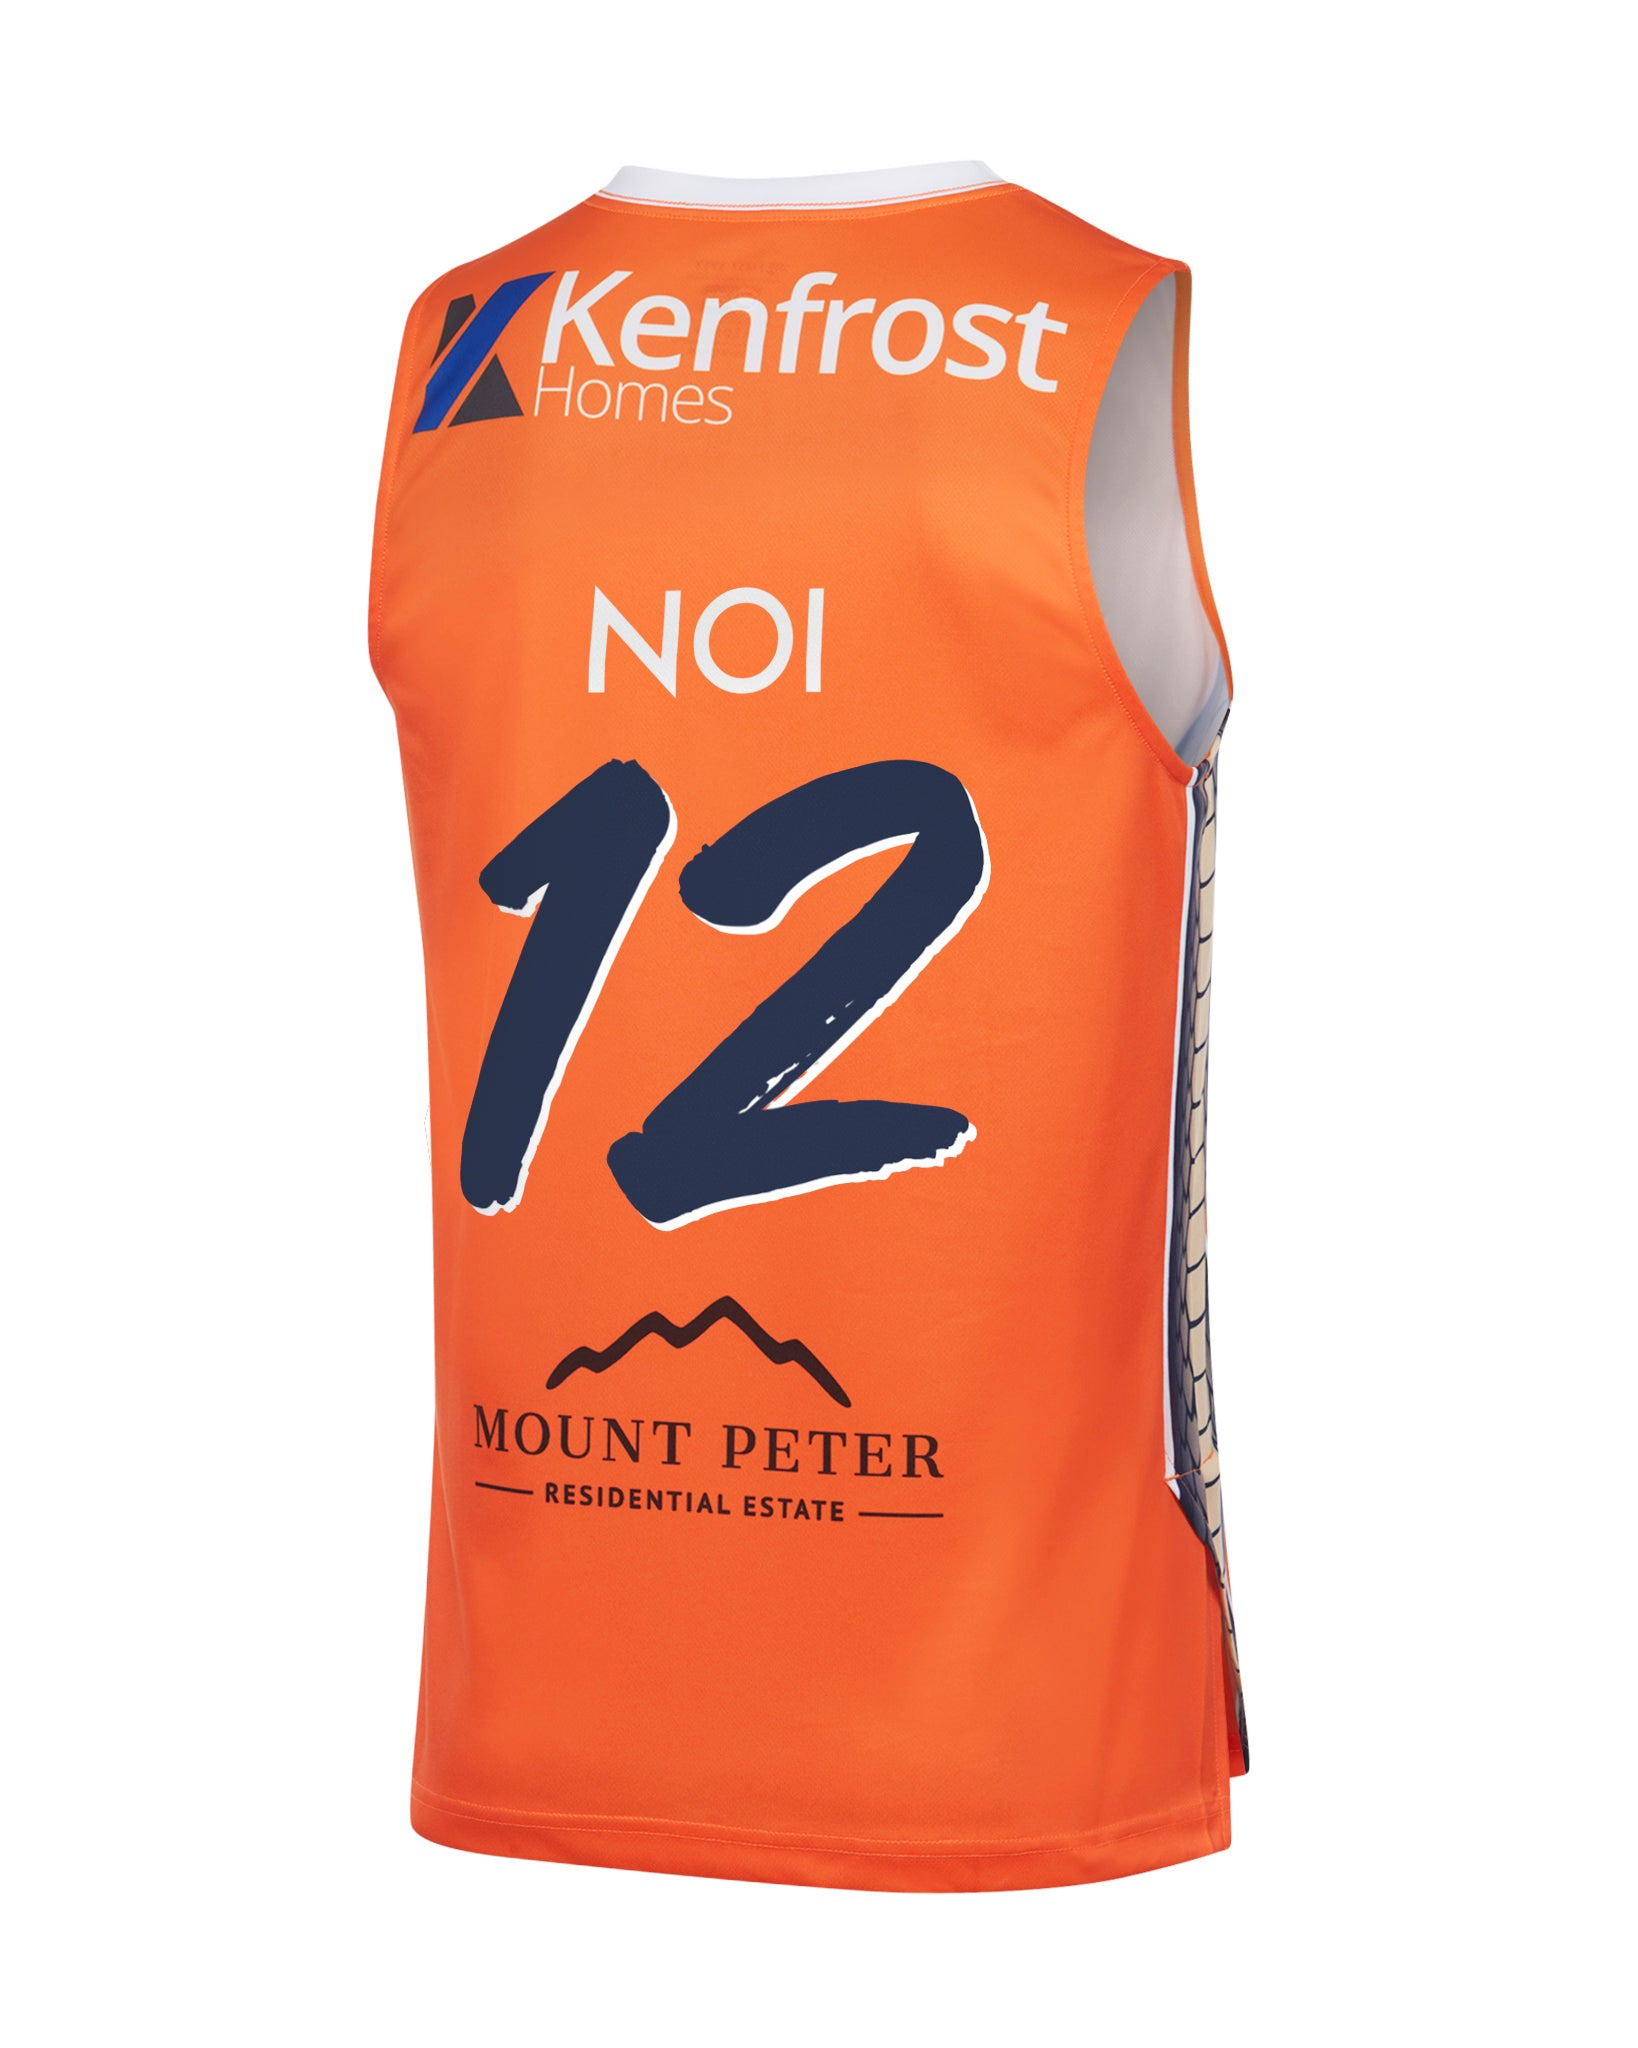 cairns-taipans-19-20-authentic-home-jersey-nate-jawai - Back Image